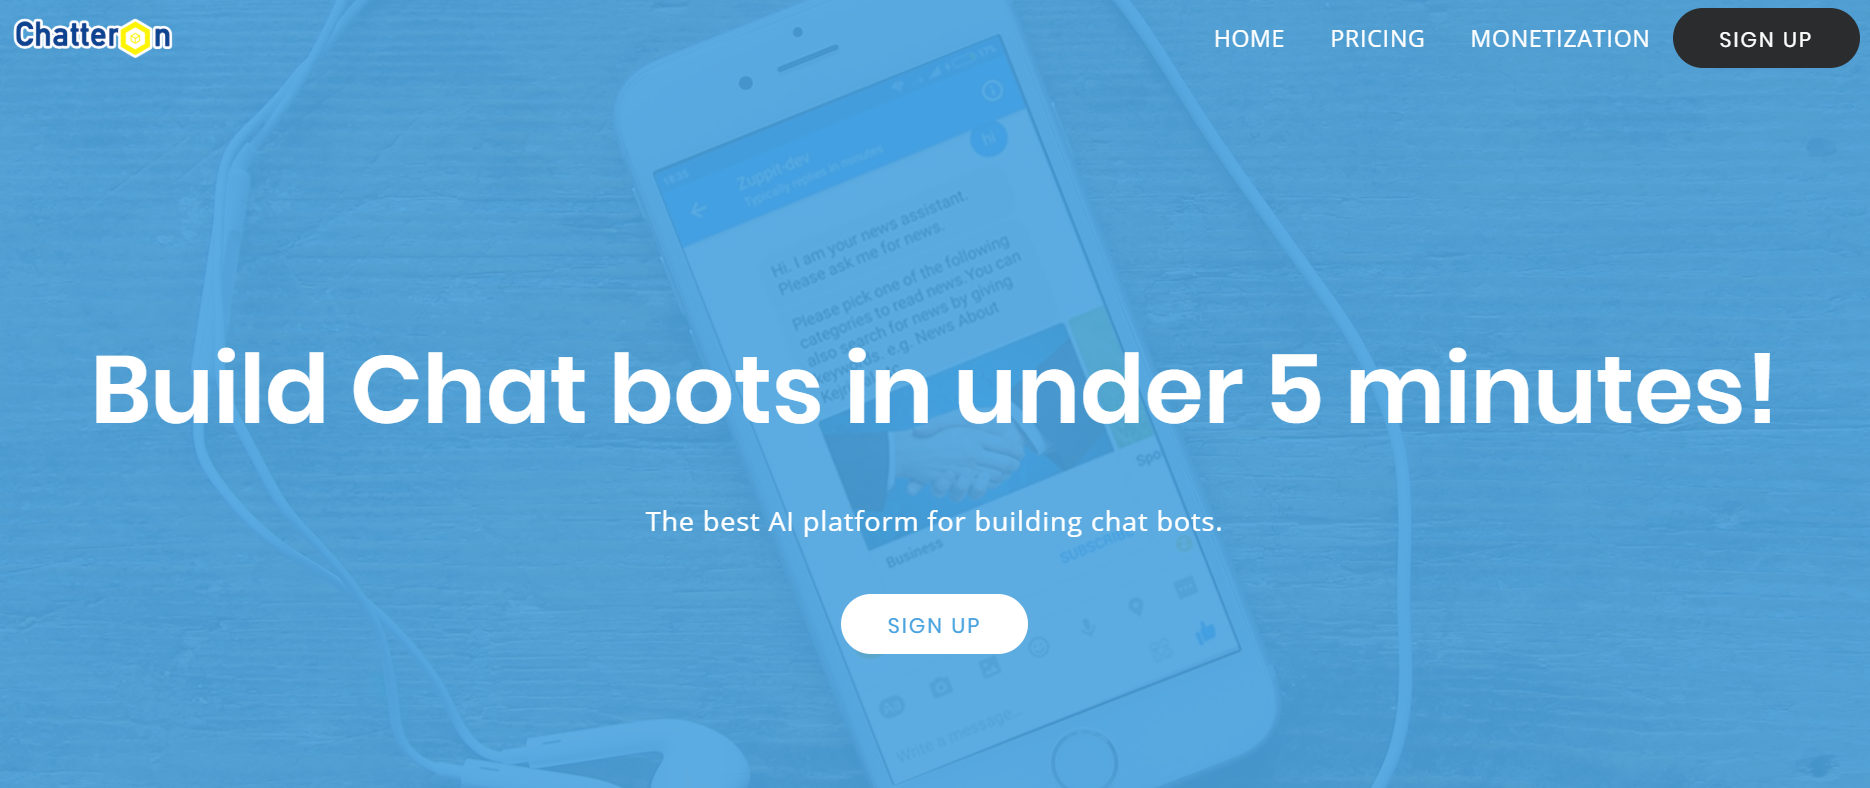 best chatbot builders - DialogFlow